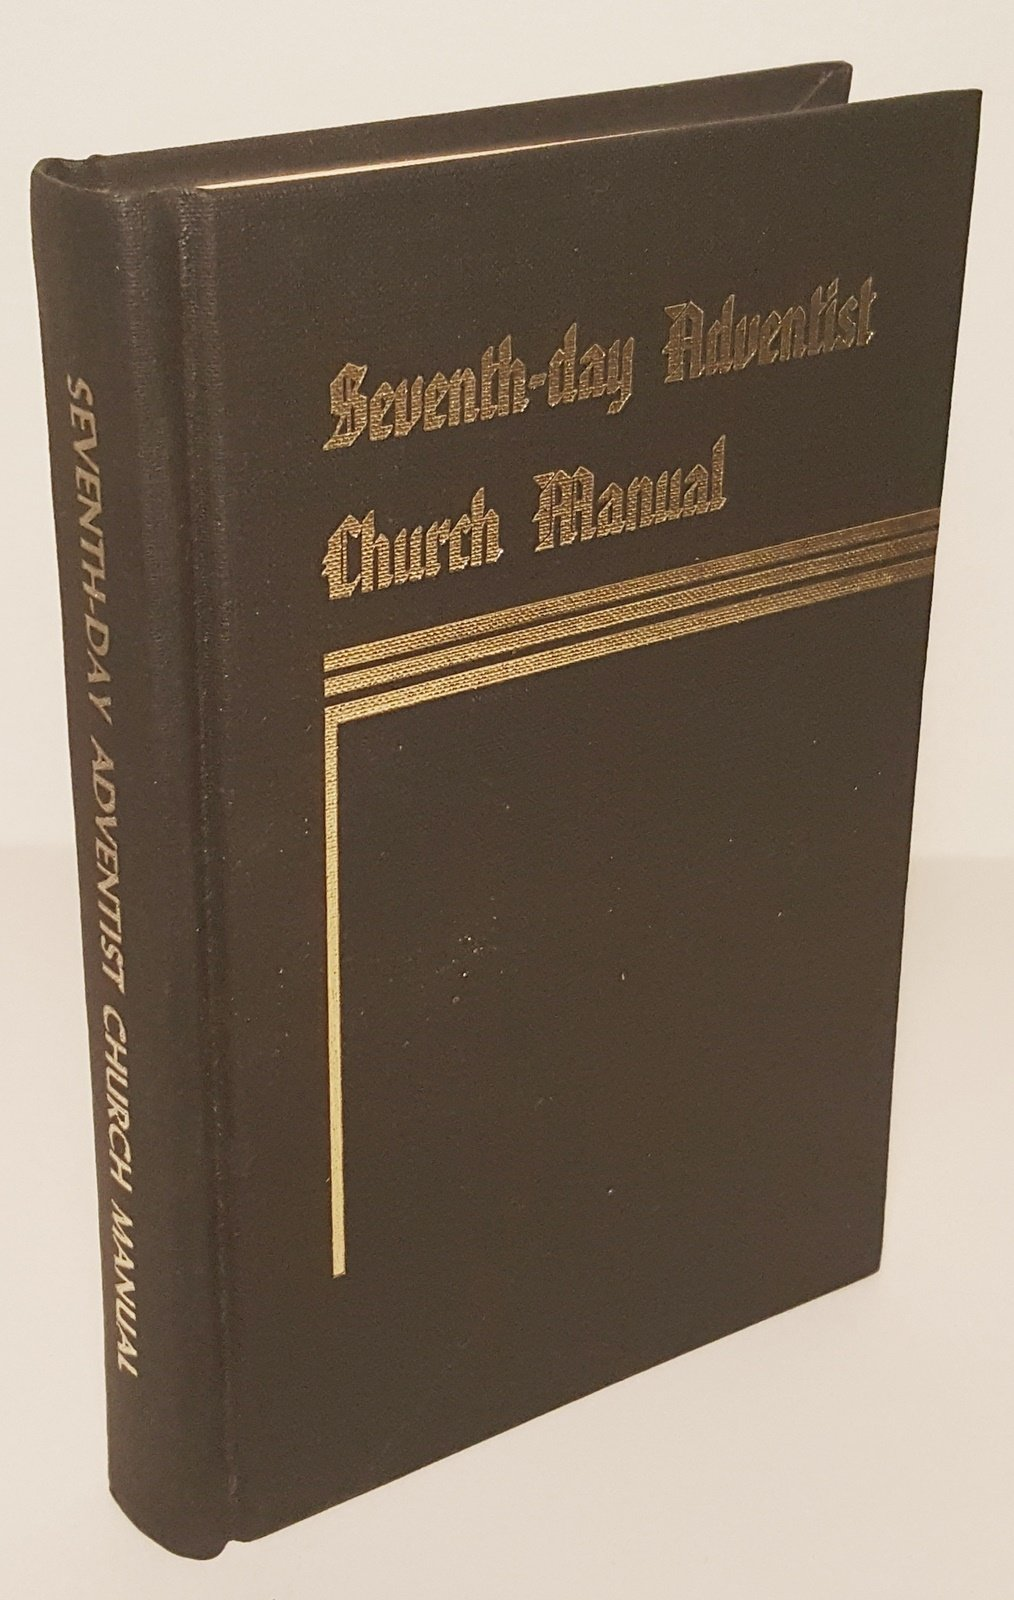 Seventh-day Adventist Church Manual (revised 1981): General Conference of  Seventh-day Adventists: Amazon.com: Books